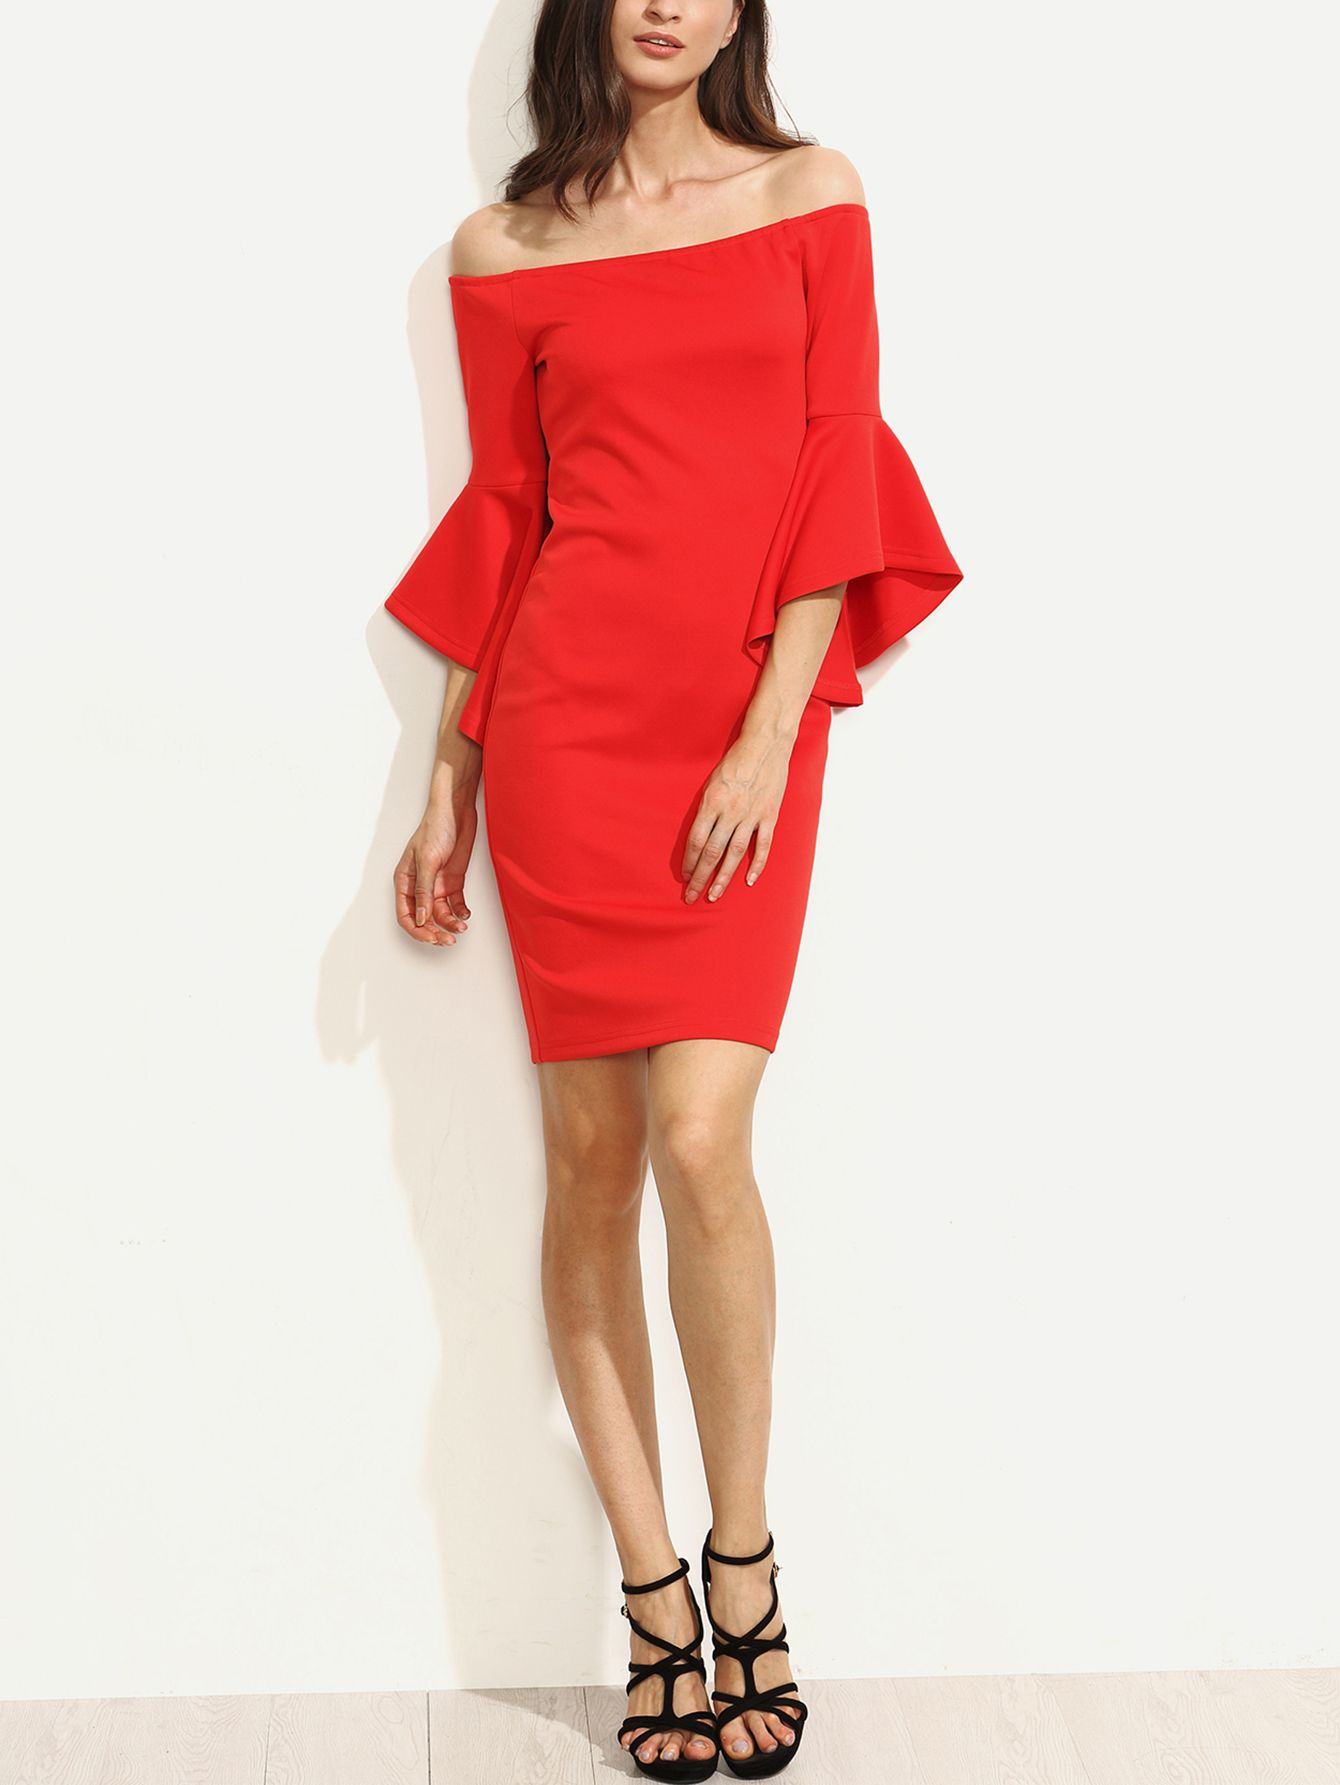 9310d86943f Shop Red Ruffle Sleeve Off The Shoulder Split Sheath Dress online. SheIn  offers Red Ruffle Sleeve Off The Shoulder Split Sheath Dress   more to fit  your ...